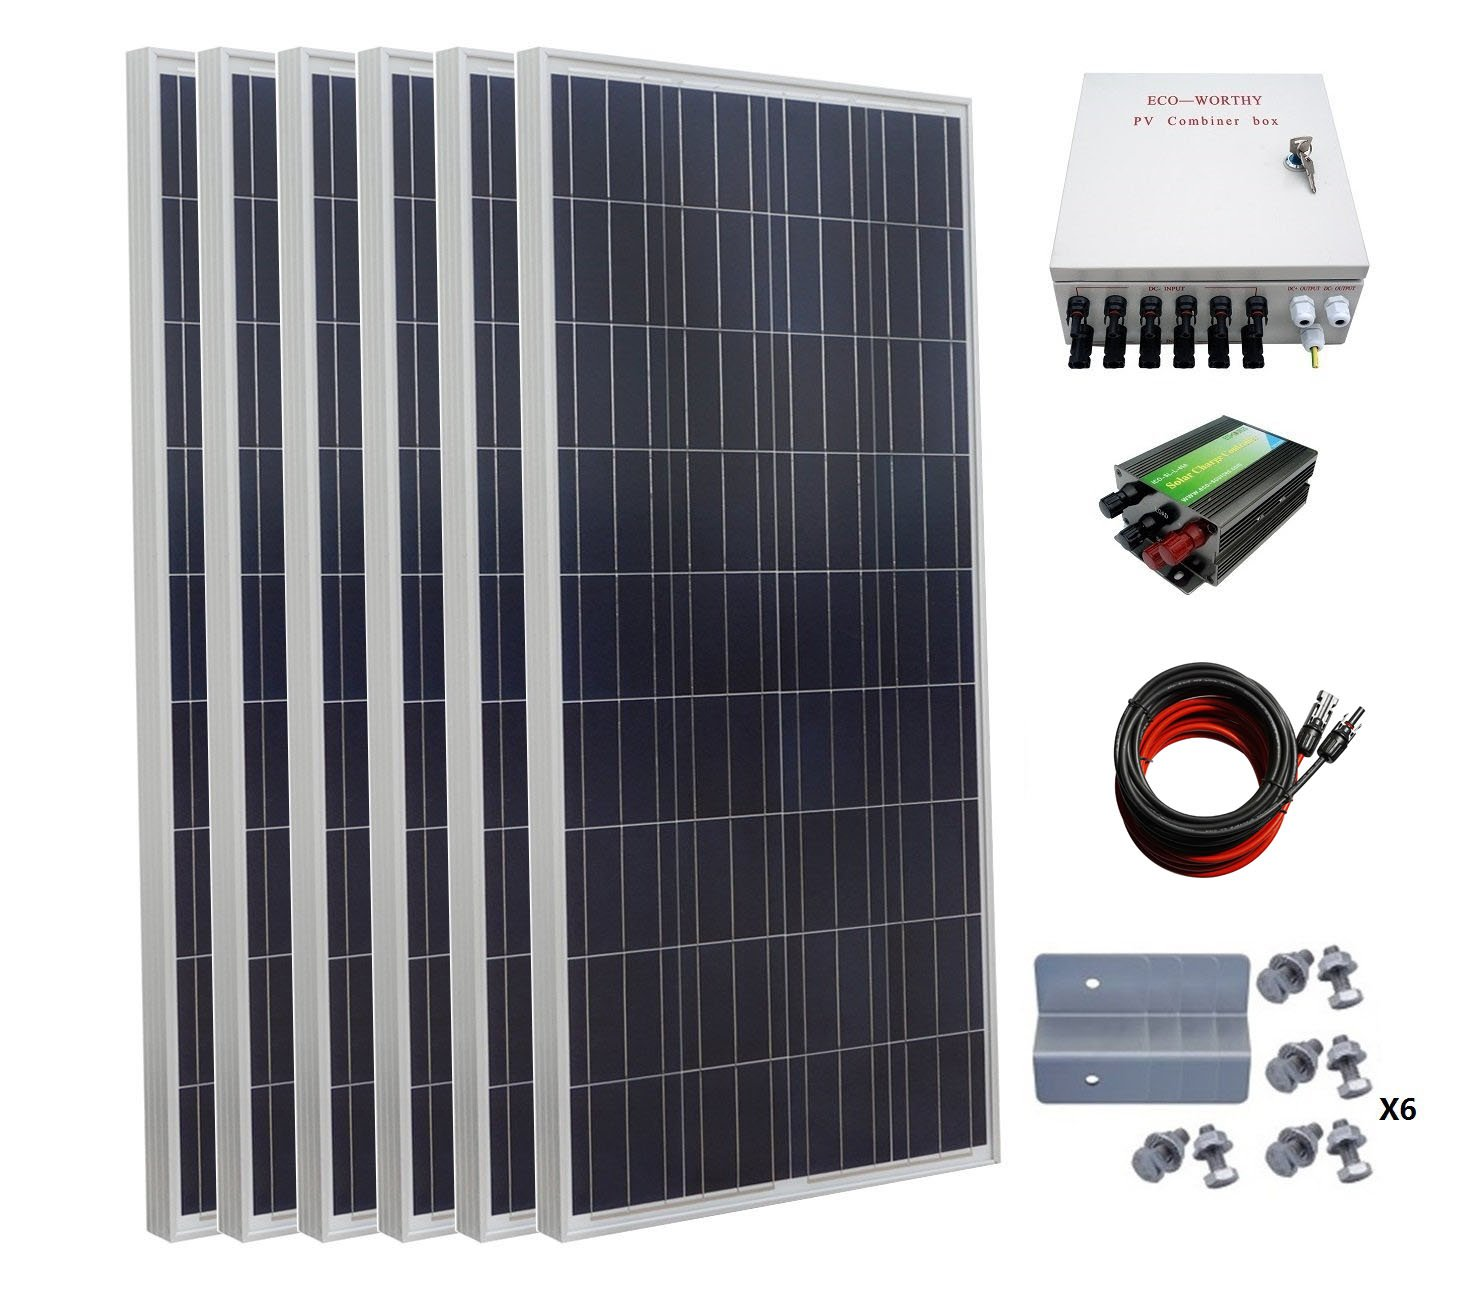 Best Solar Battery Chargers For Rv Charging Eco Worthy 10w 20w 30w 50w Panel Kit 12v